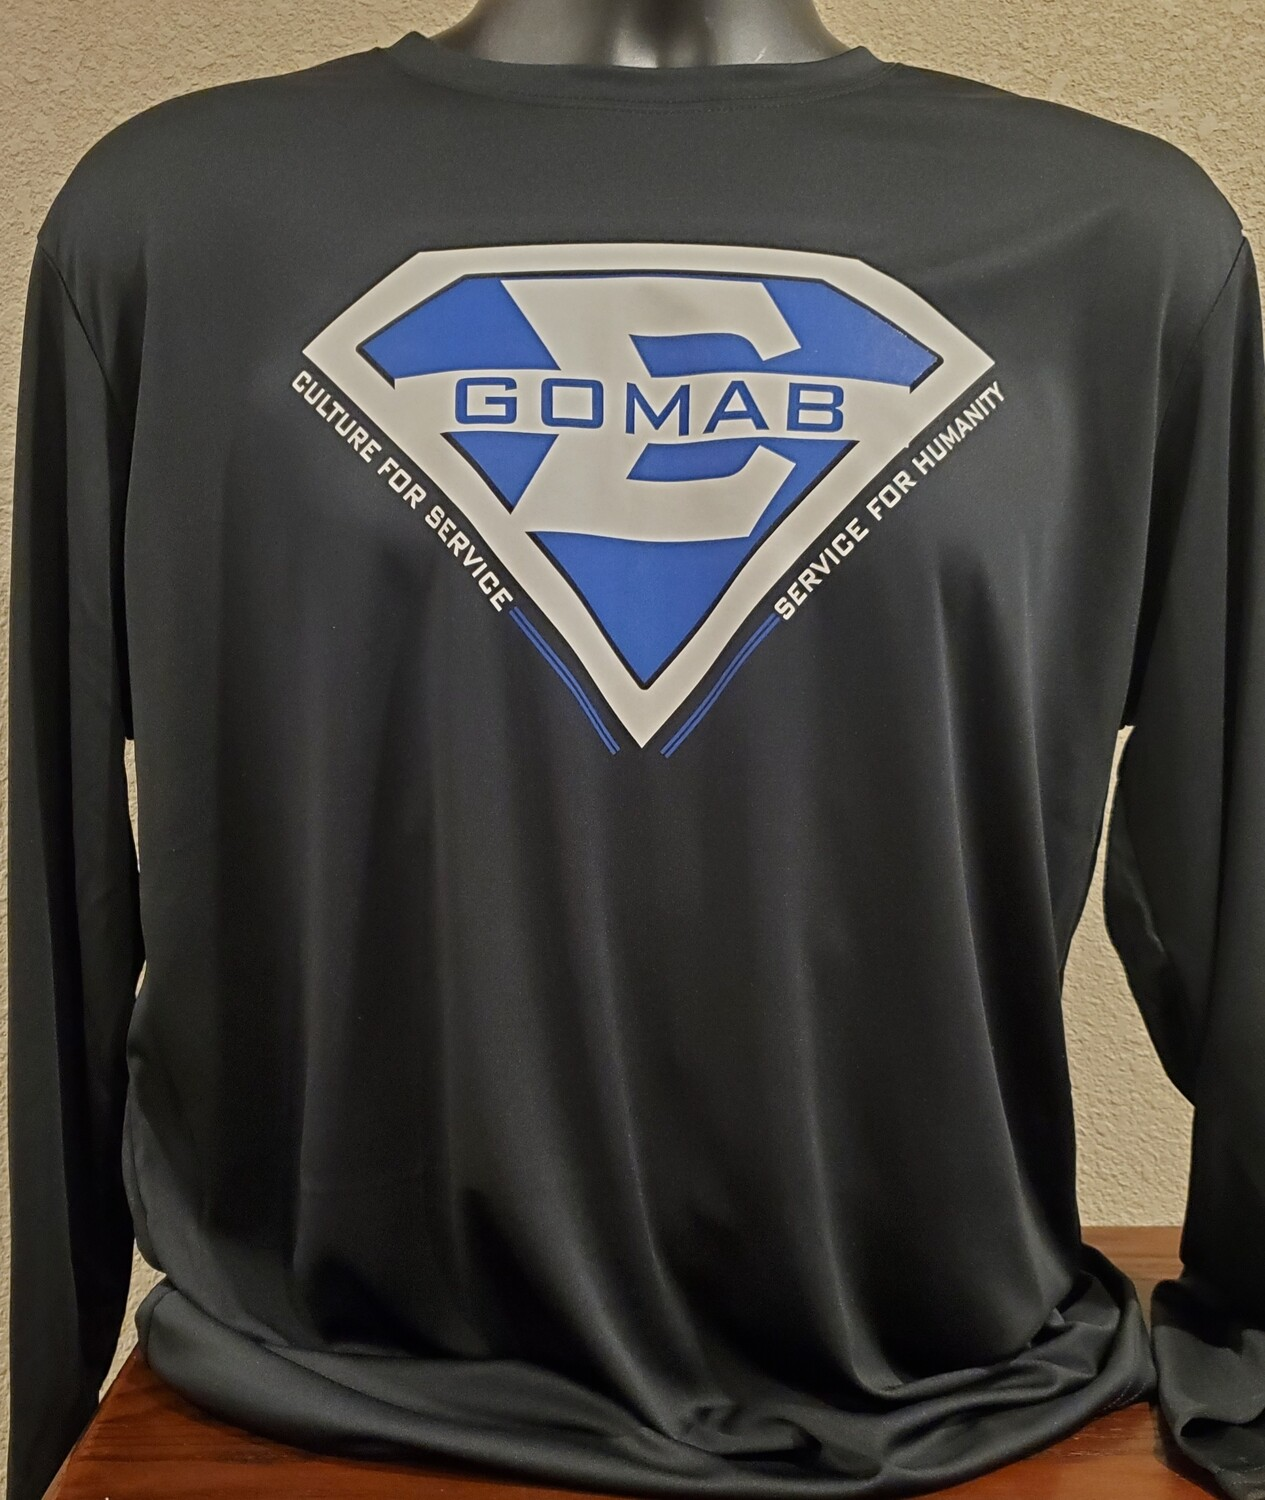 SALE*****Super Sigma (Dri-Fit) - Long Sleeve****SALE